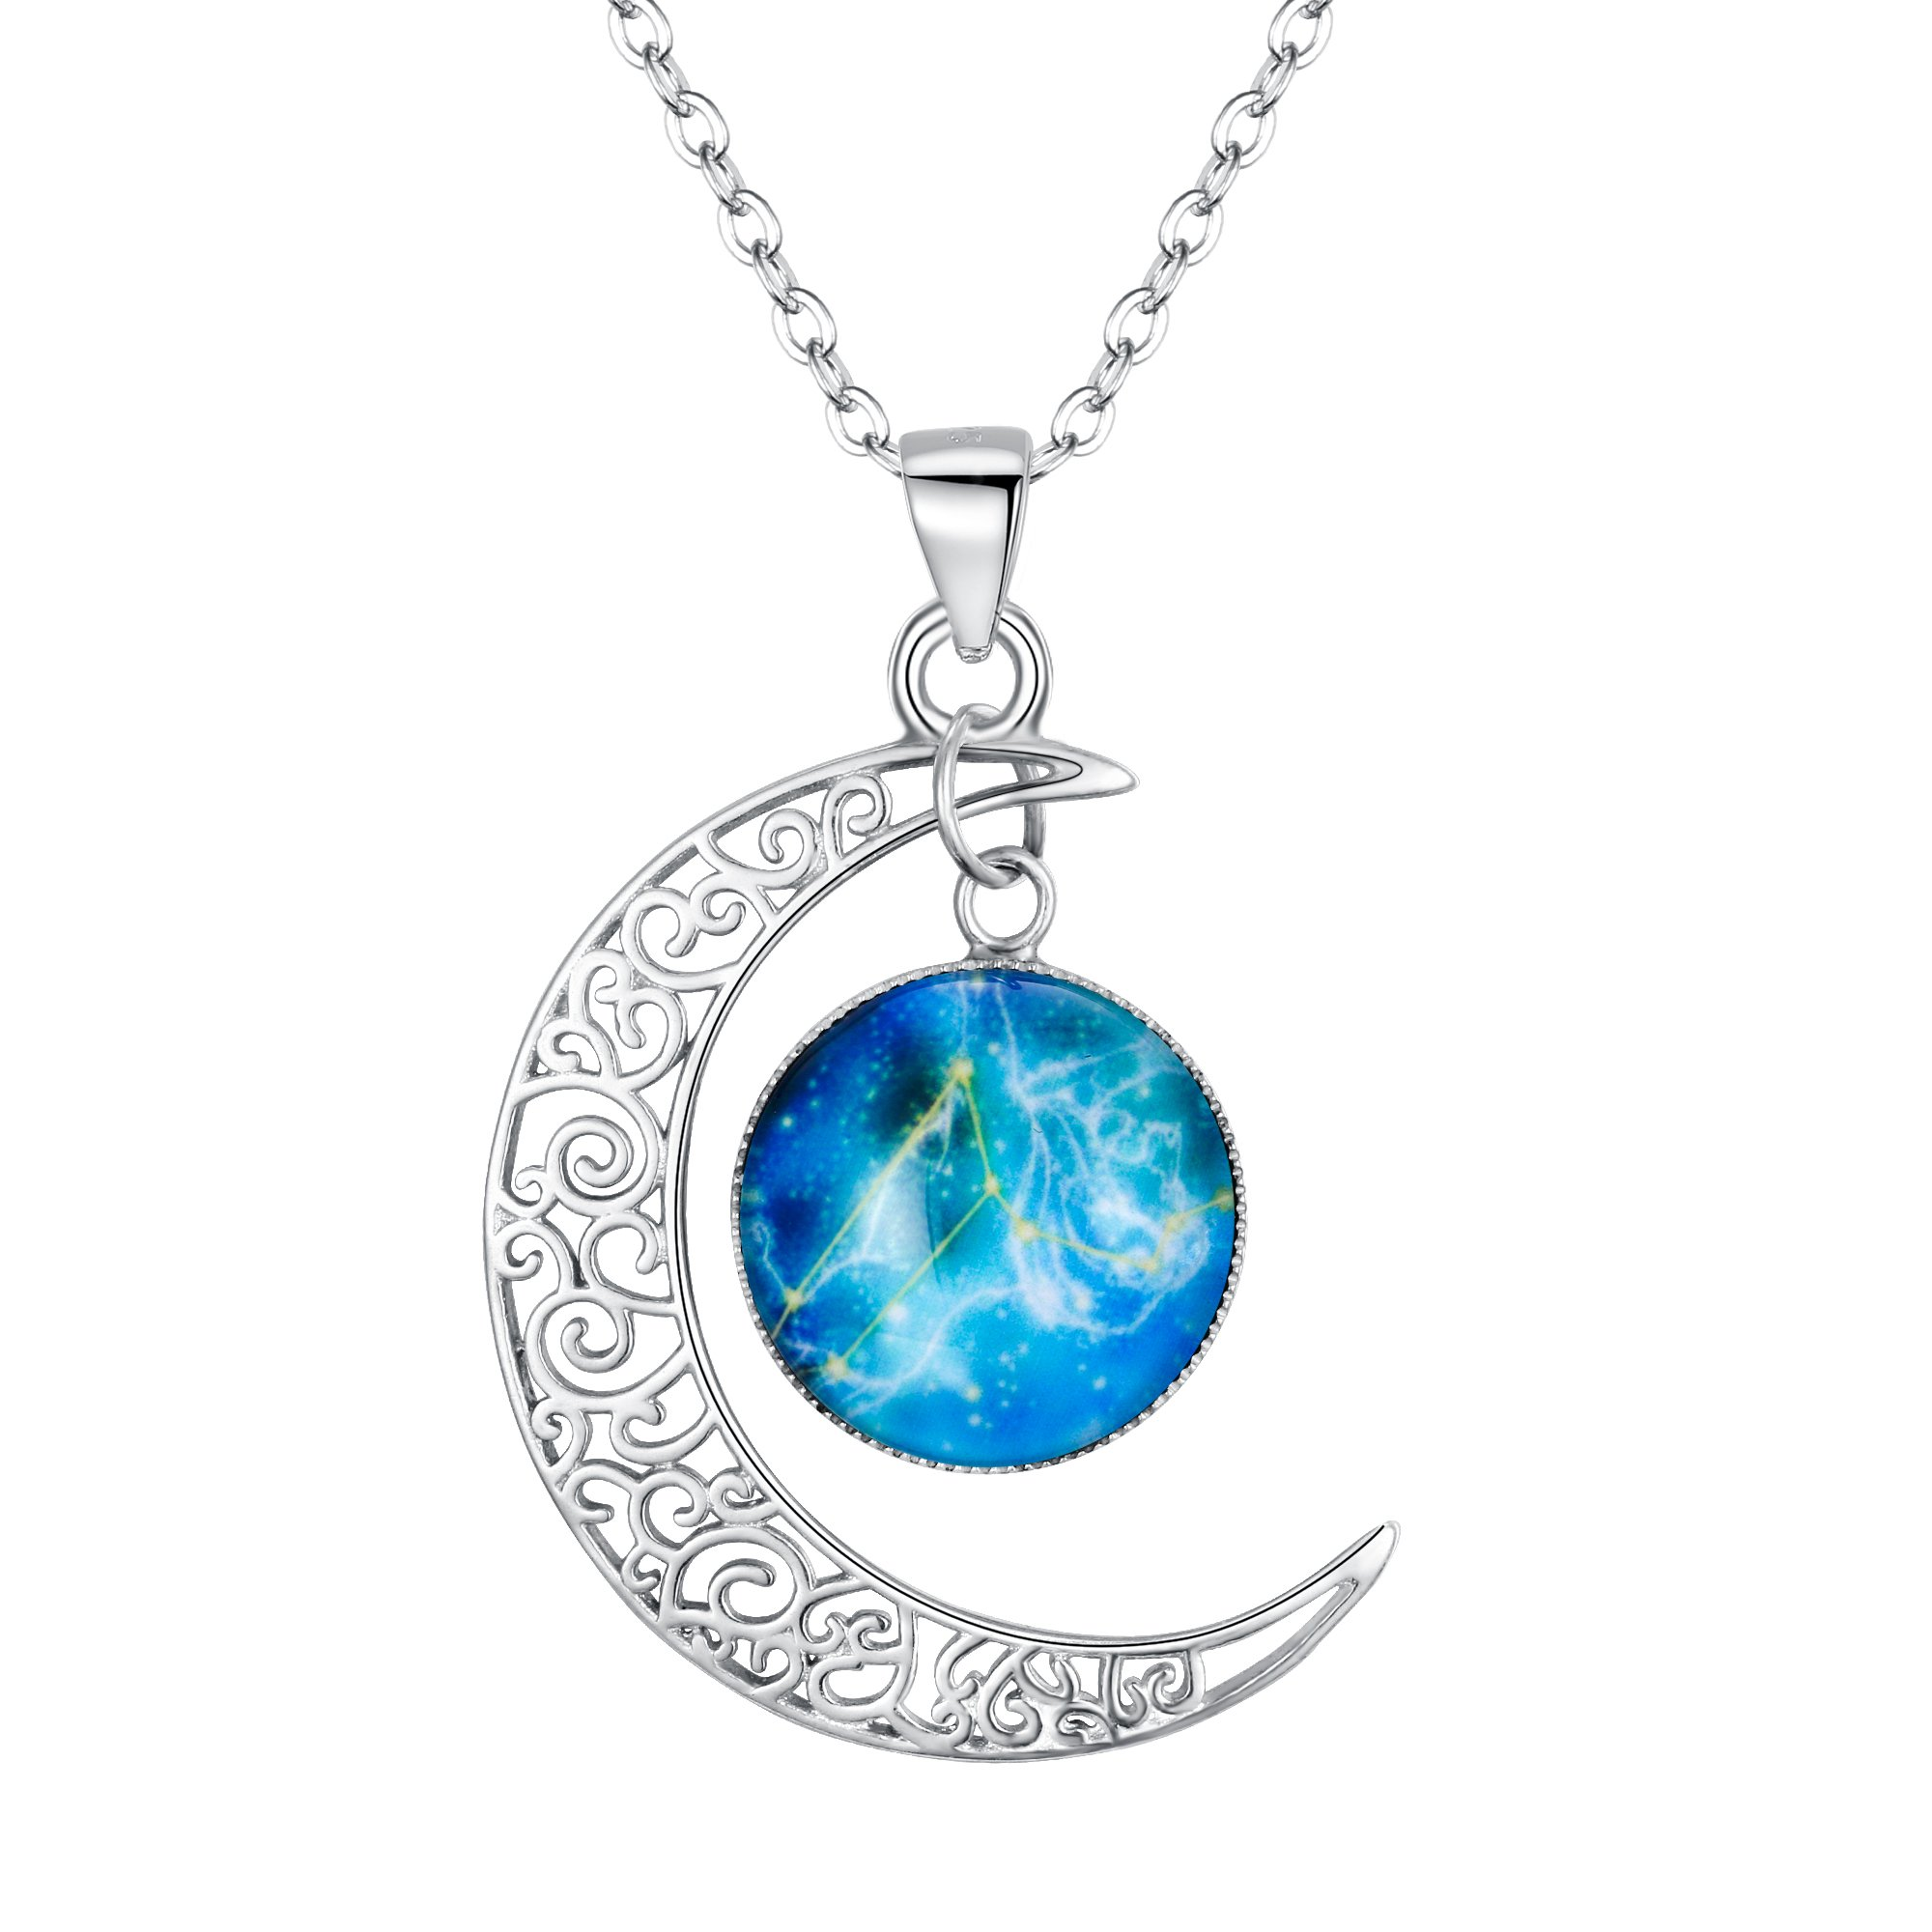 BriLove Women 925 Sterling Silver Galaxy Crescent Moon Pendant Necklace -''Leo'' Horoscope Zodiac 12 Constellation Astrology Glass Bead Necklace